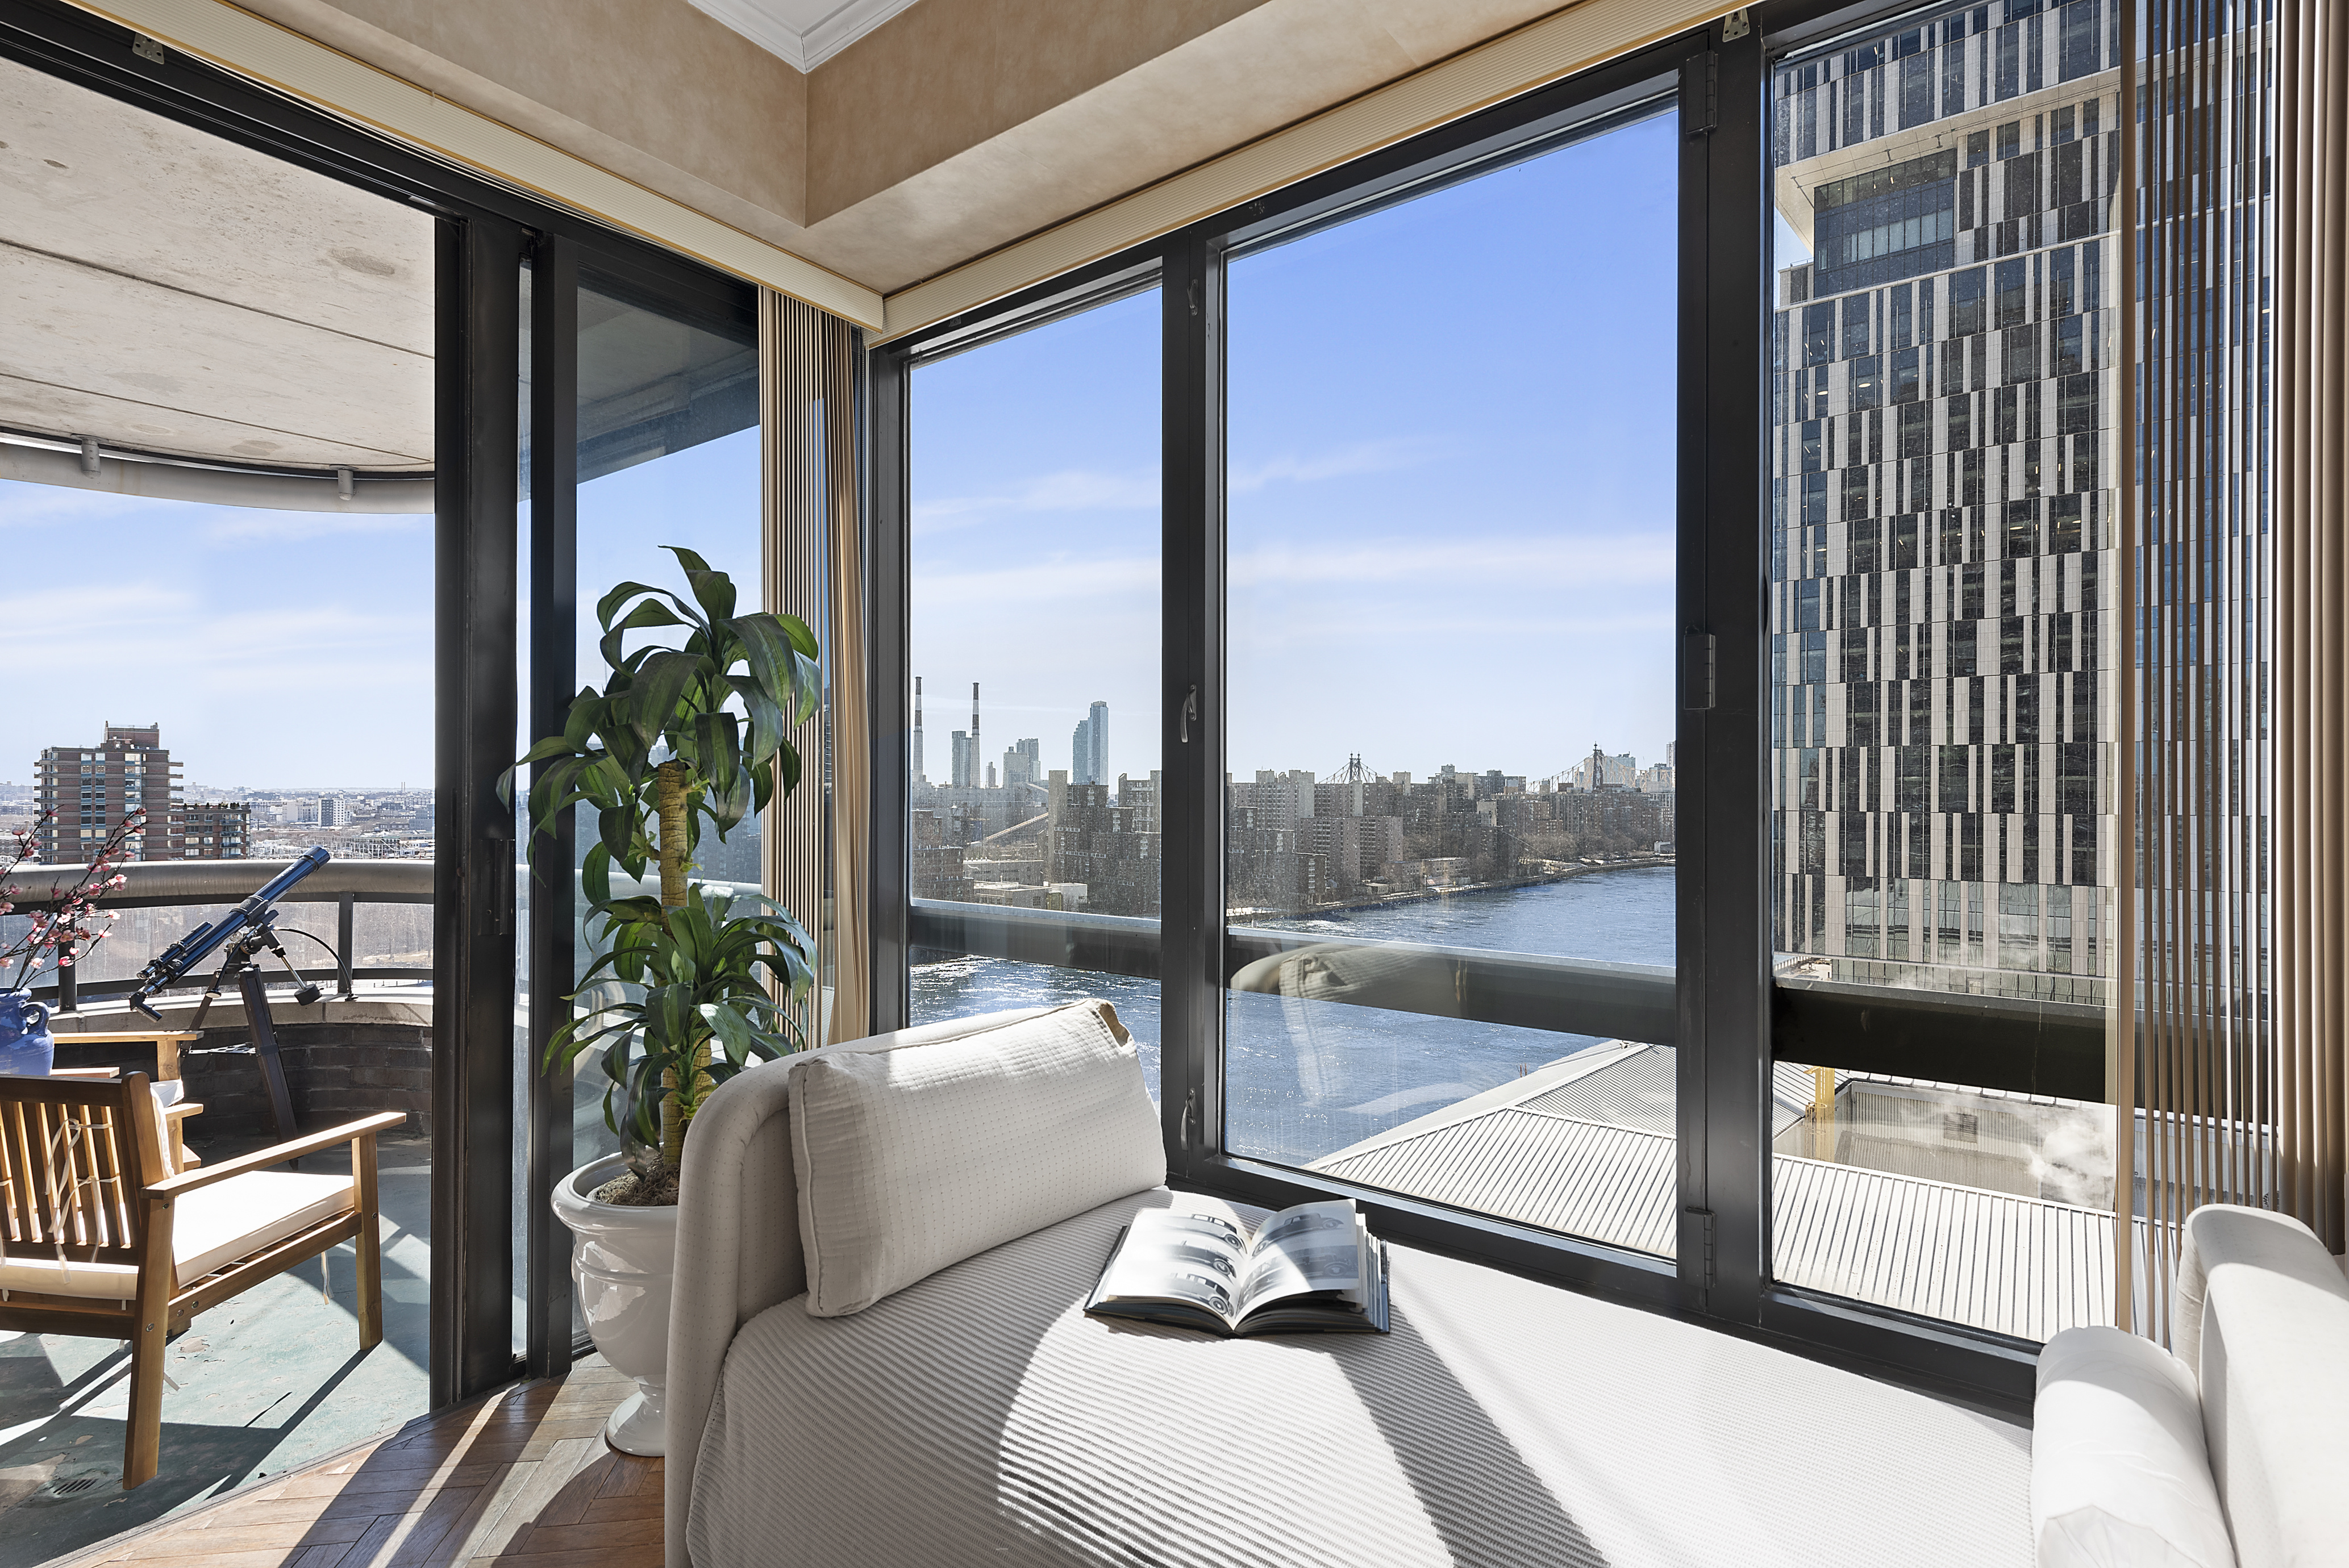 primary photo for 530 East 76th Street 17-A, New York, NY 10021, US